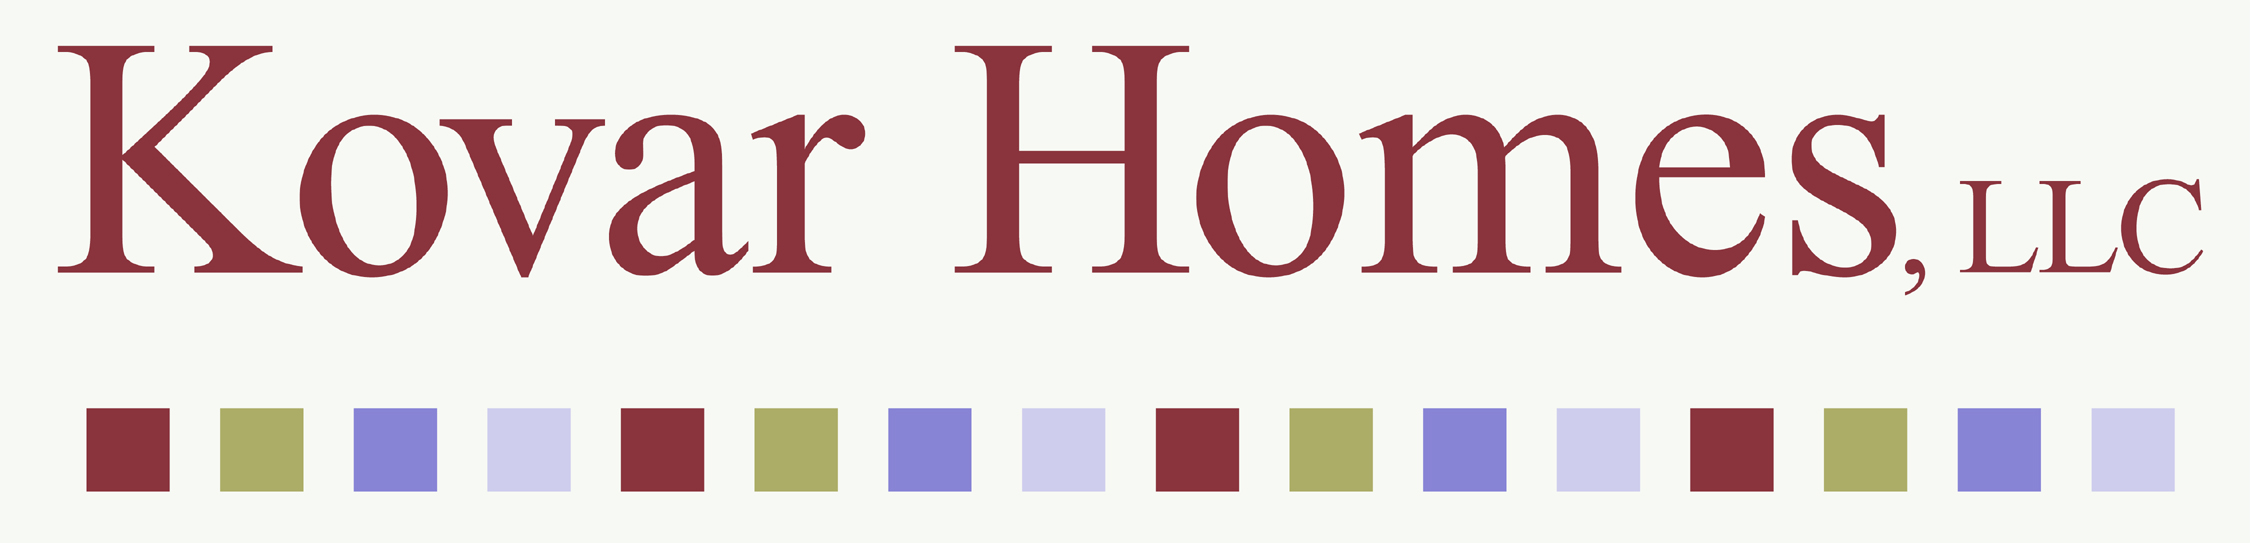 Tour of Homes - Kovar Homes logo